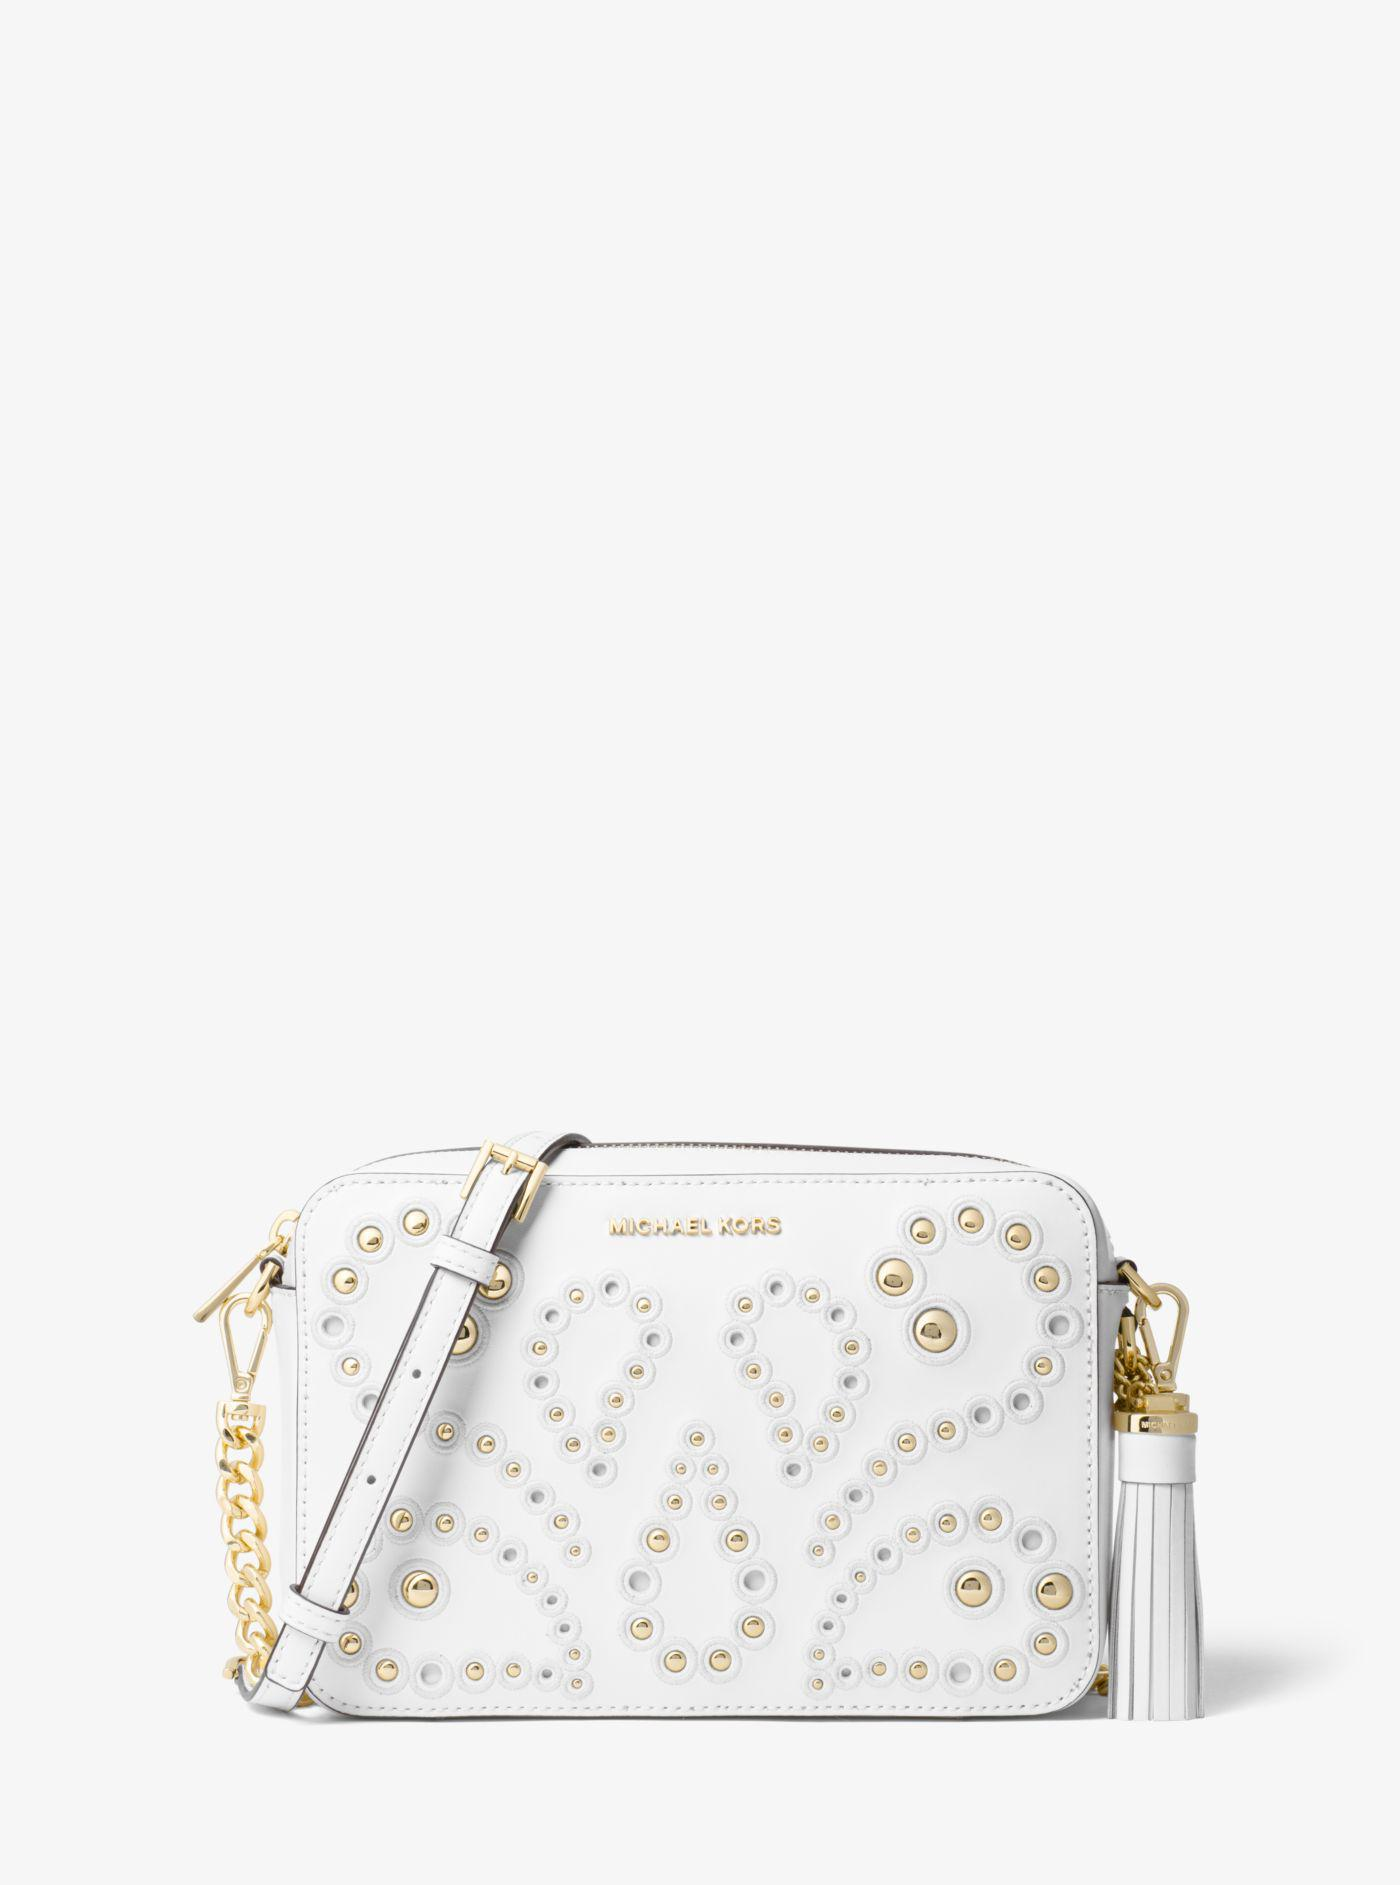 b8abb1f12375 Michael Kors Ginny Medium Embellished Leather Crossbody in White - Lyst